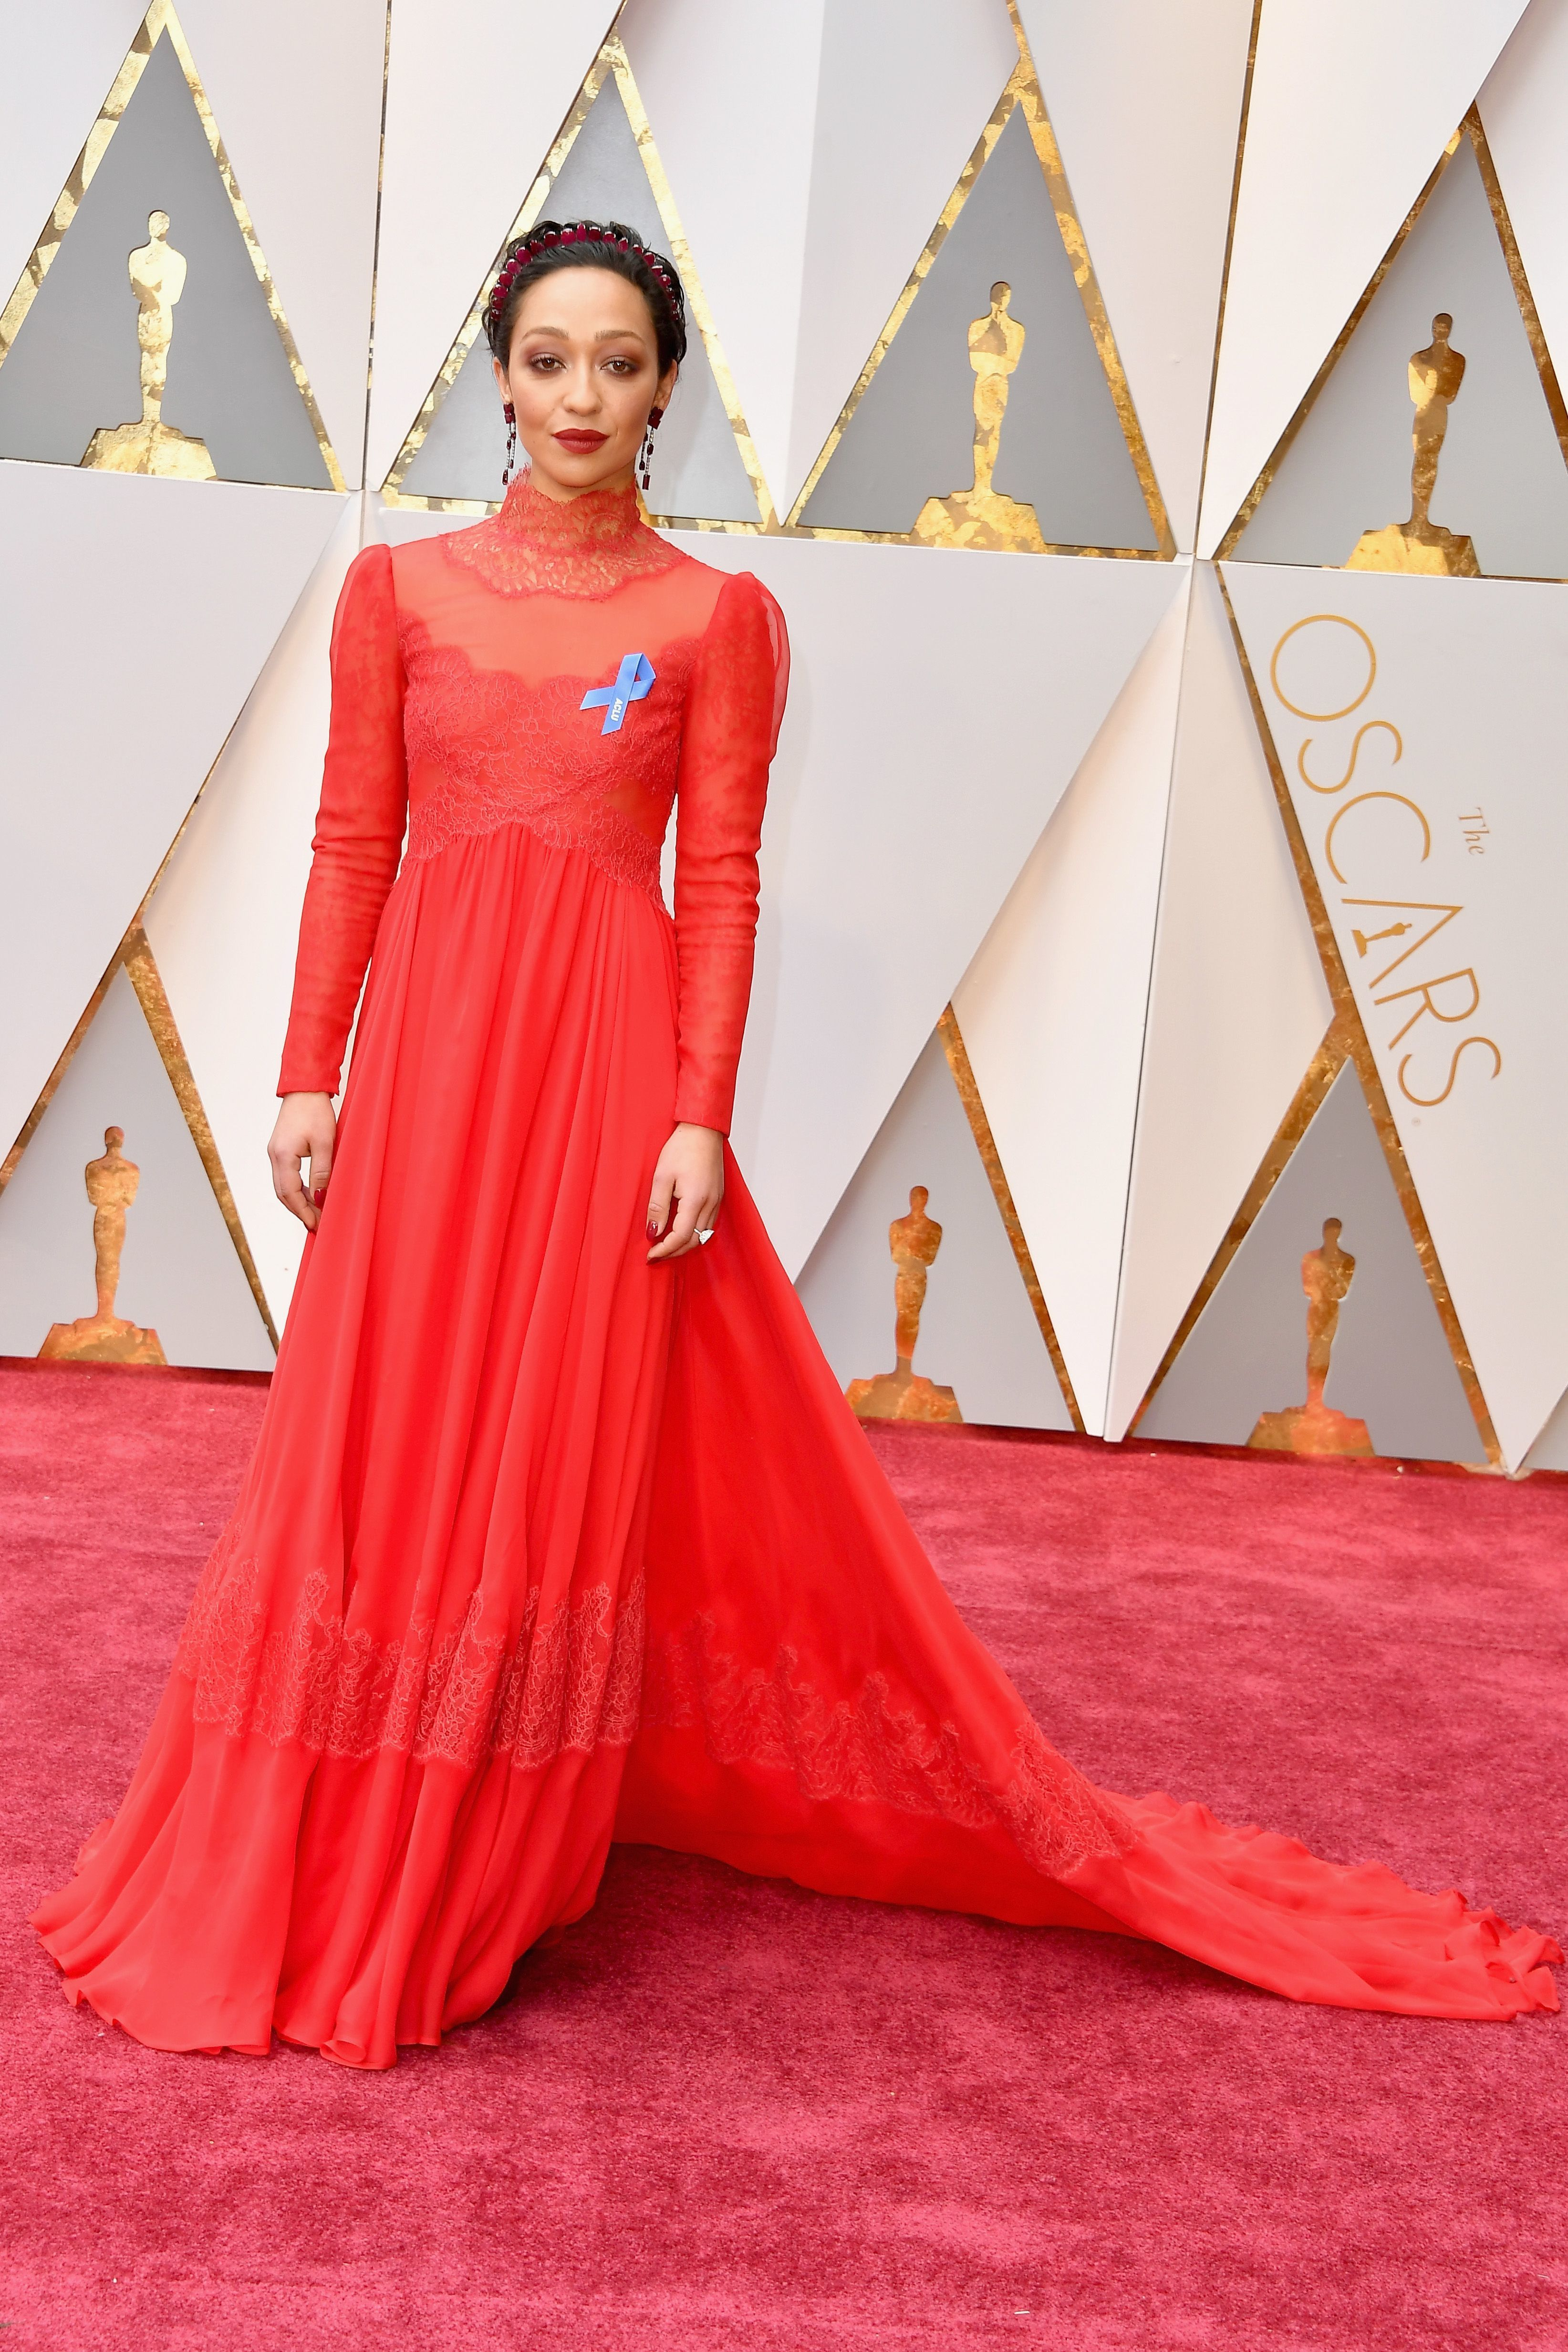 Oscars 2017: The Very Best Looks From The Red Carpet